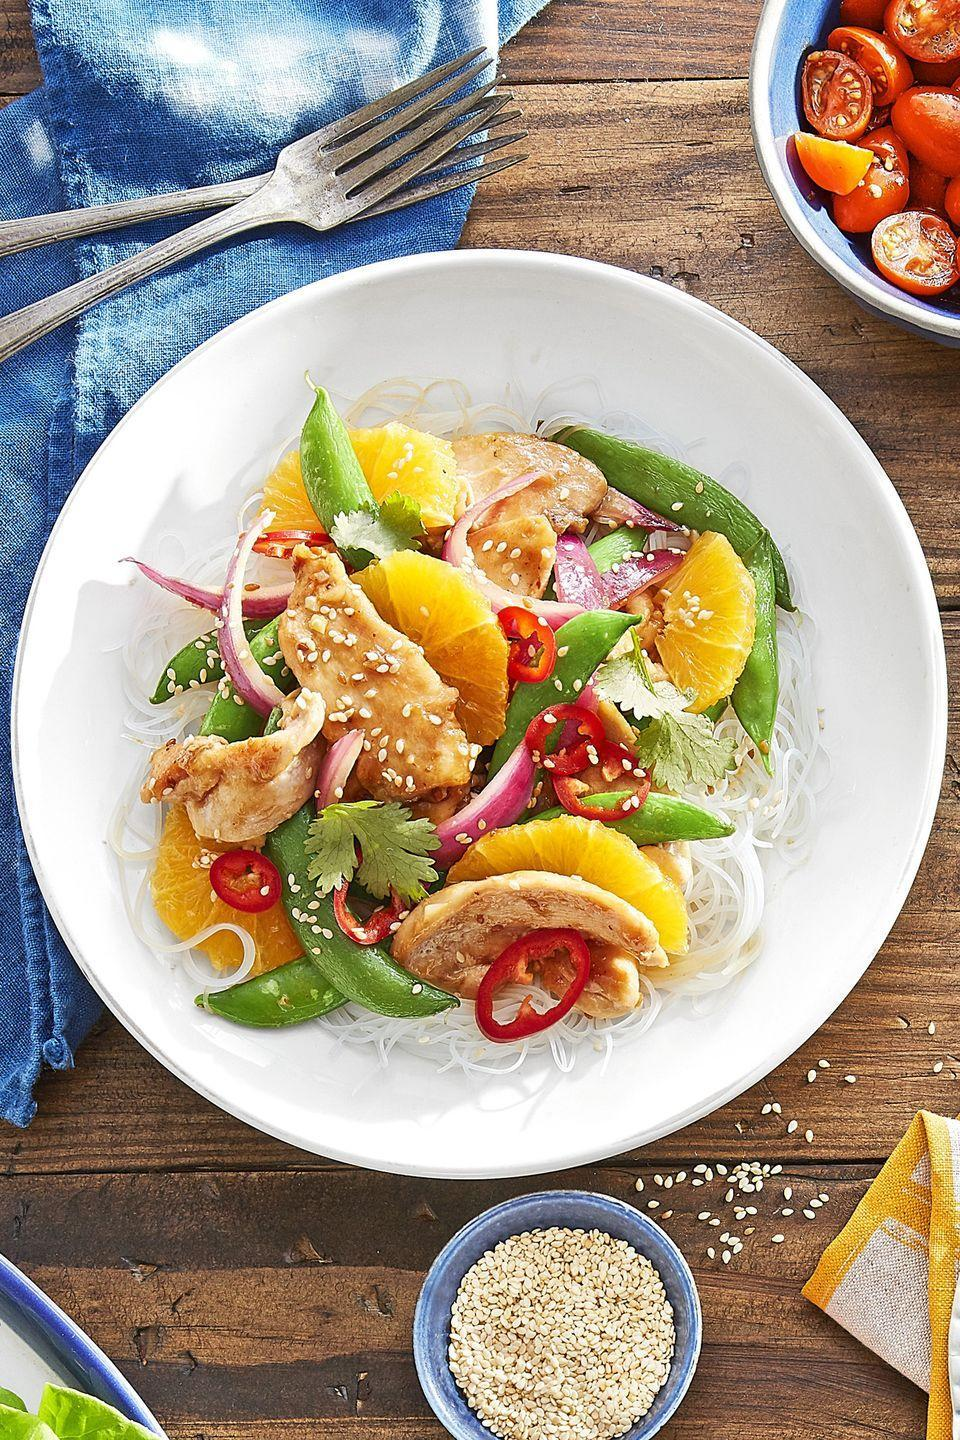 "<p>Oranges and sugar snap peas bring a touch of sweetness to this noodle and chicken stir-fry bowl.</p><p><strong><a href=""https://www.countryliving.com/food-drinks/recipes/a44282/sugar-snap-orange-teriyaki-stir-fry-recipe/"" rel=""nofollow noopener"" target=""_blank"" data-ylk=""slk:Get the recipe"" class=""link rapid-noclick-resp"">Get the recipe</a>. </strong></p>"